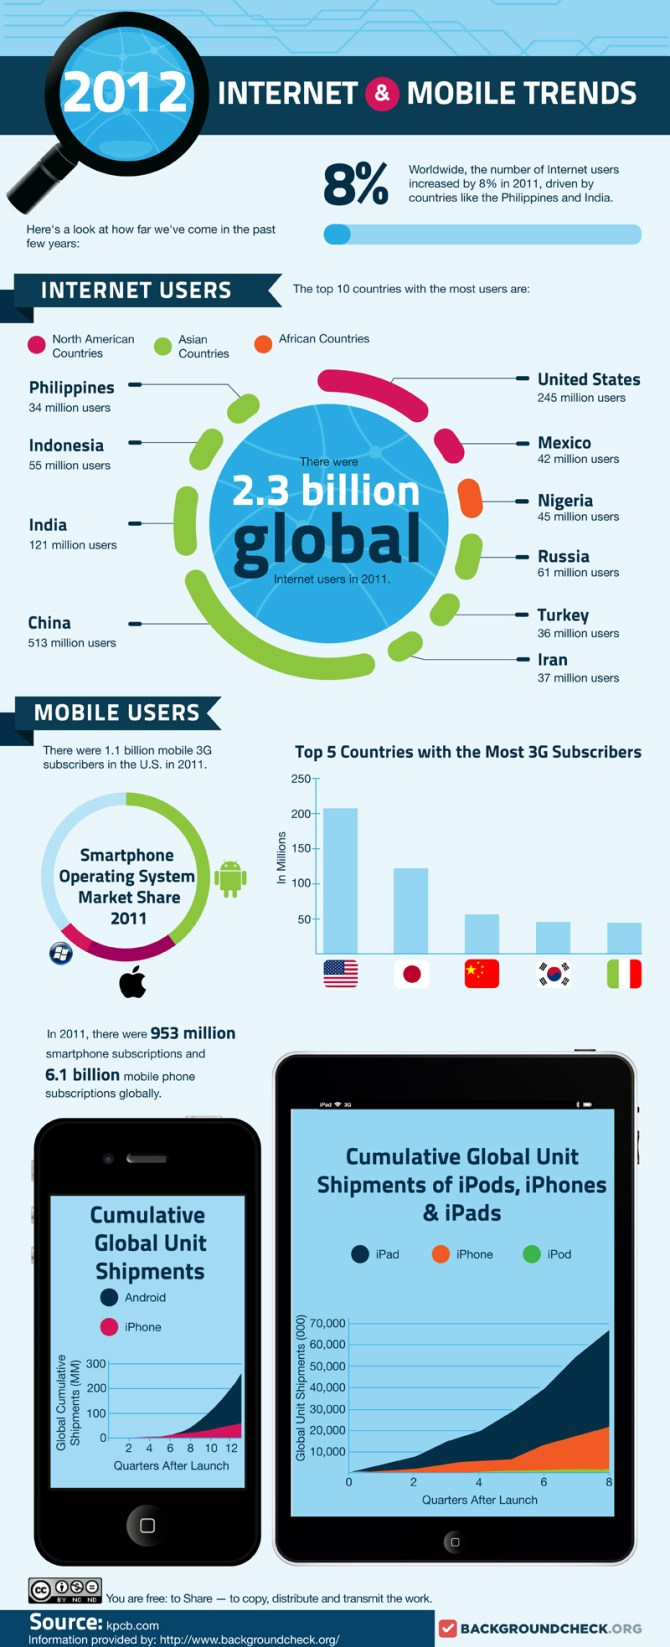 2012 Internet and Mobile Trends